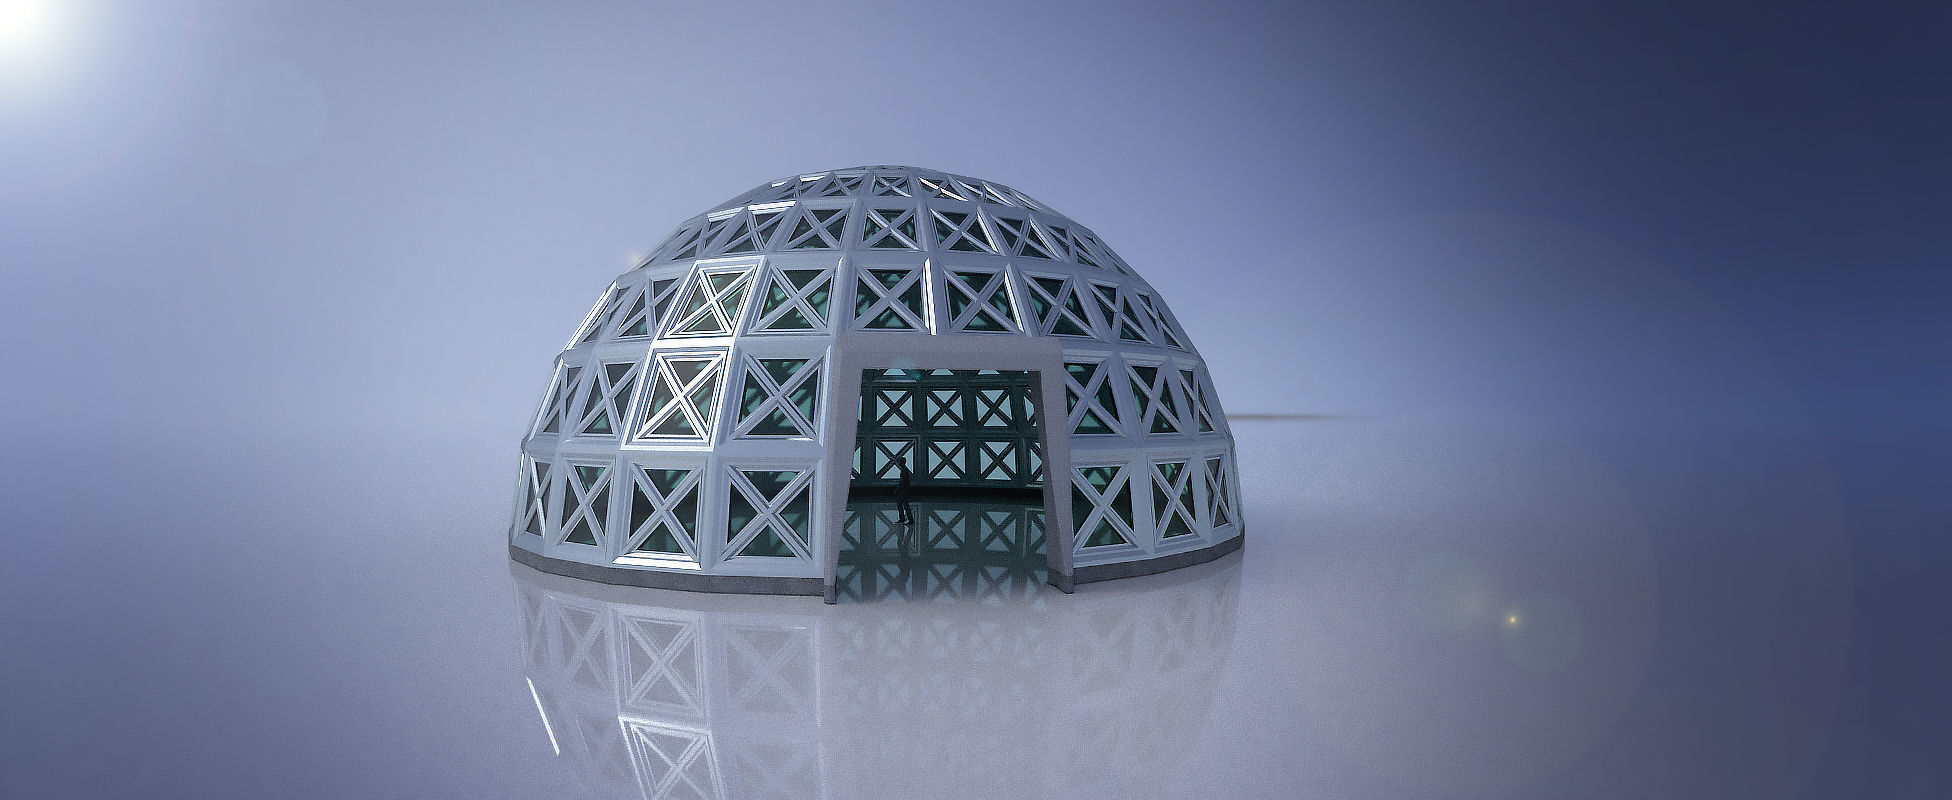 Large steel dome with glass panels and entry